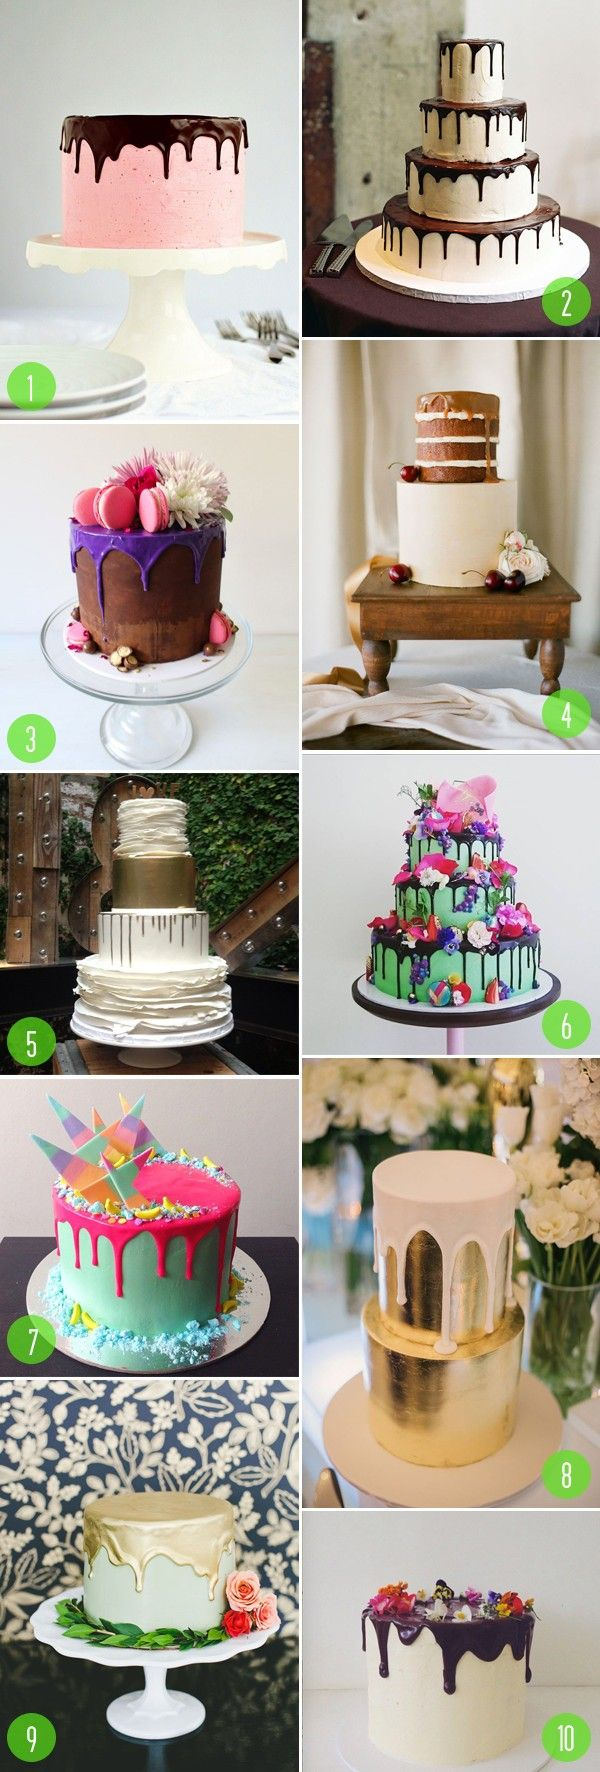 Top 10: Drizzled wedding cakes